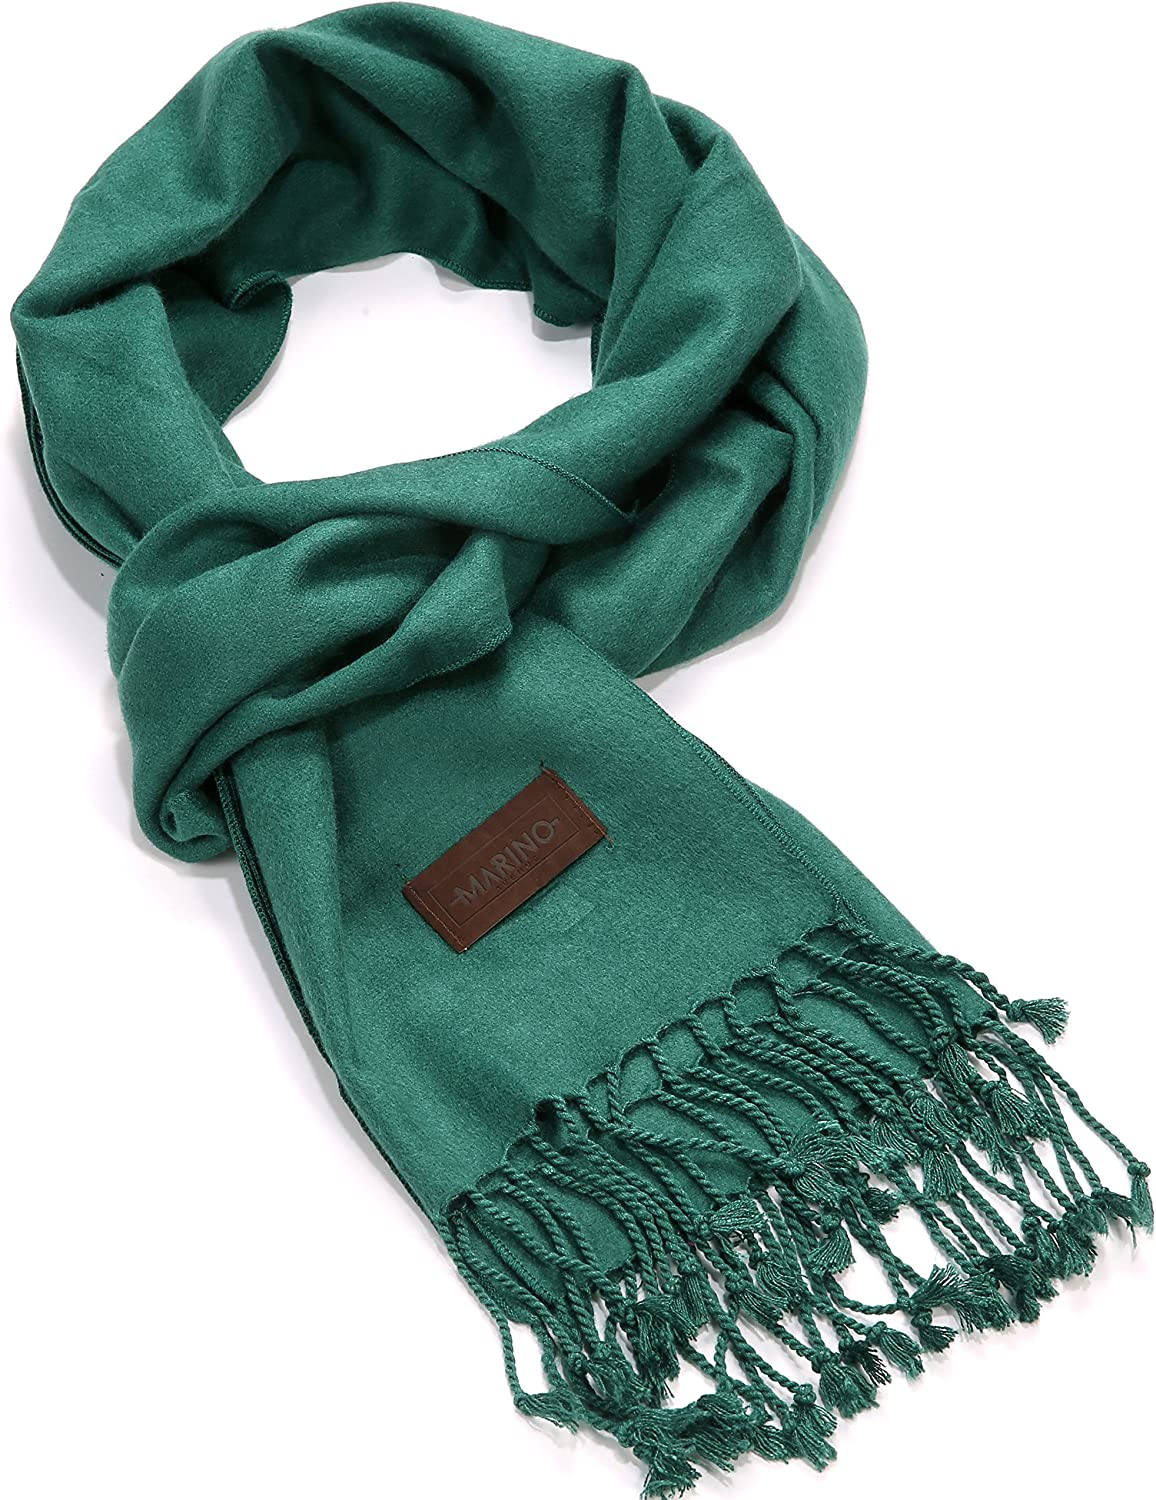 Ribbed Knit Mens Scarves Winter Scarfs for Men Mio Marino Mens Knitted Scarf